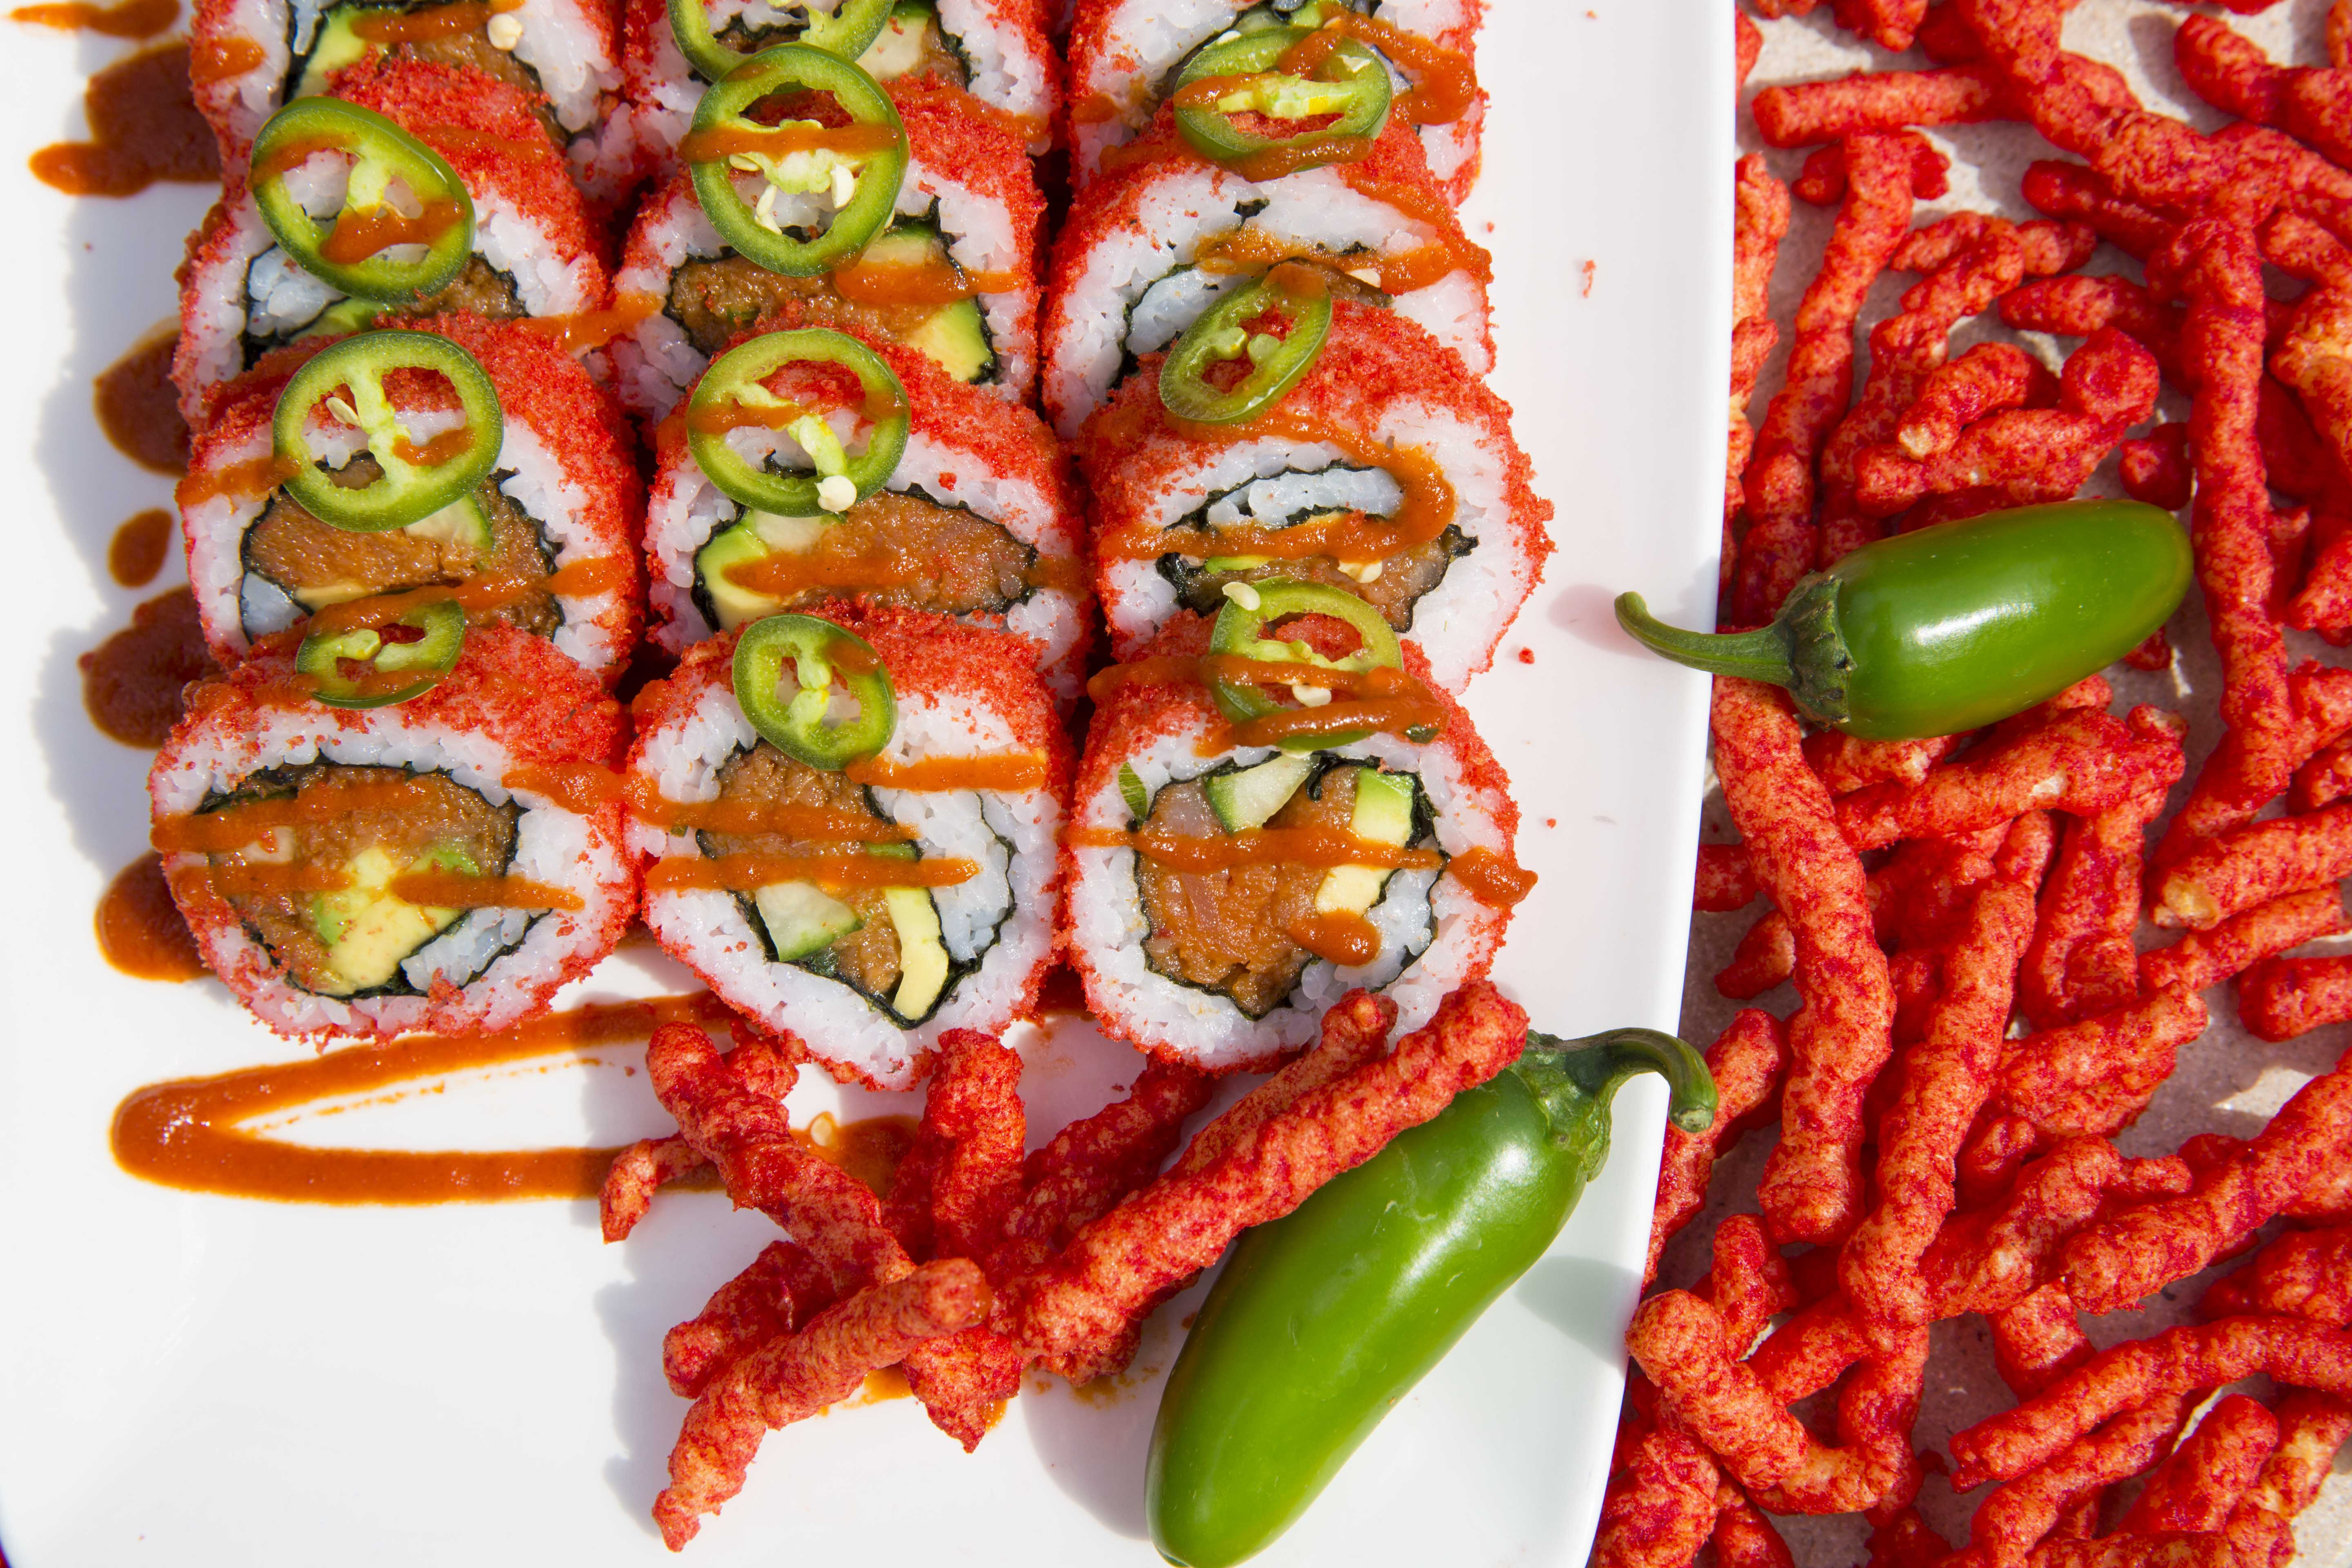 Funner Sushi Friday's every week during dinner hours at the Buffet!